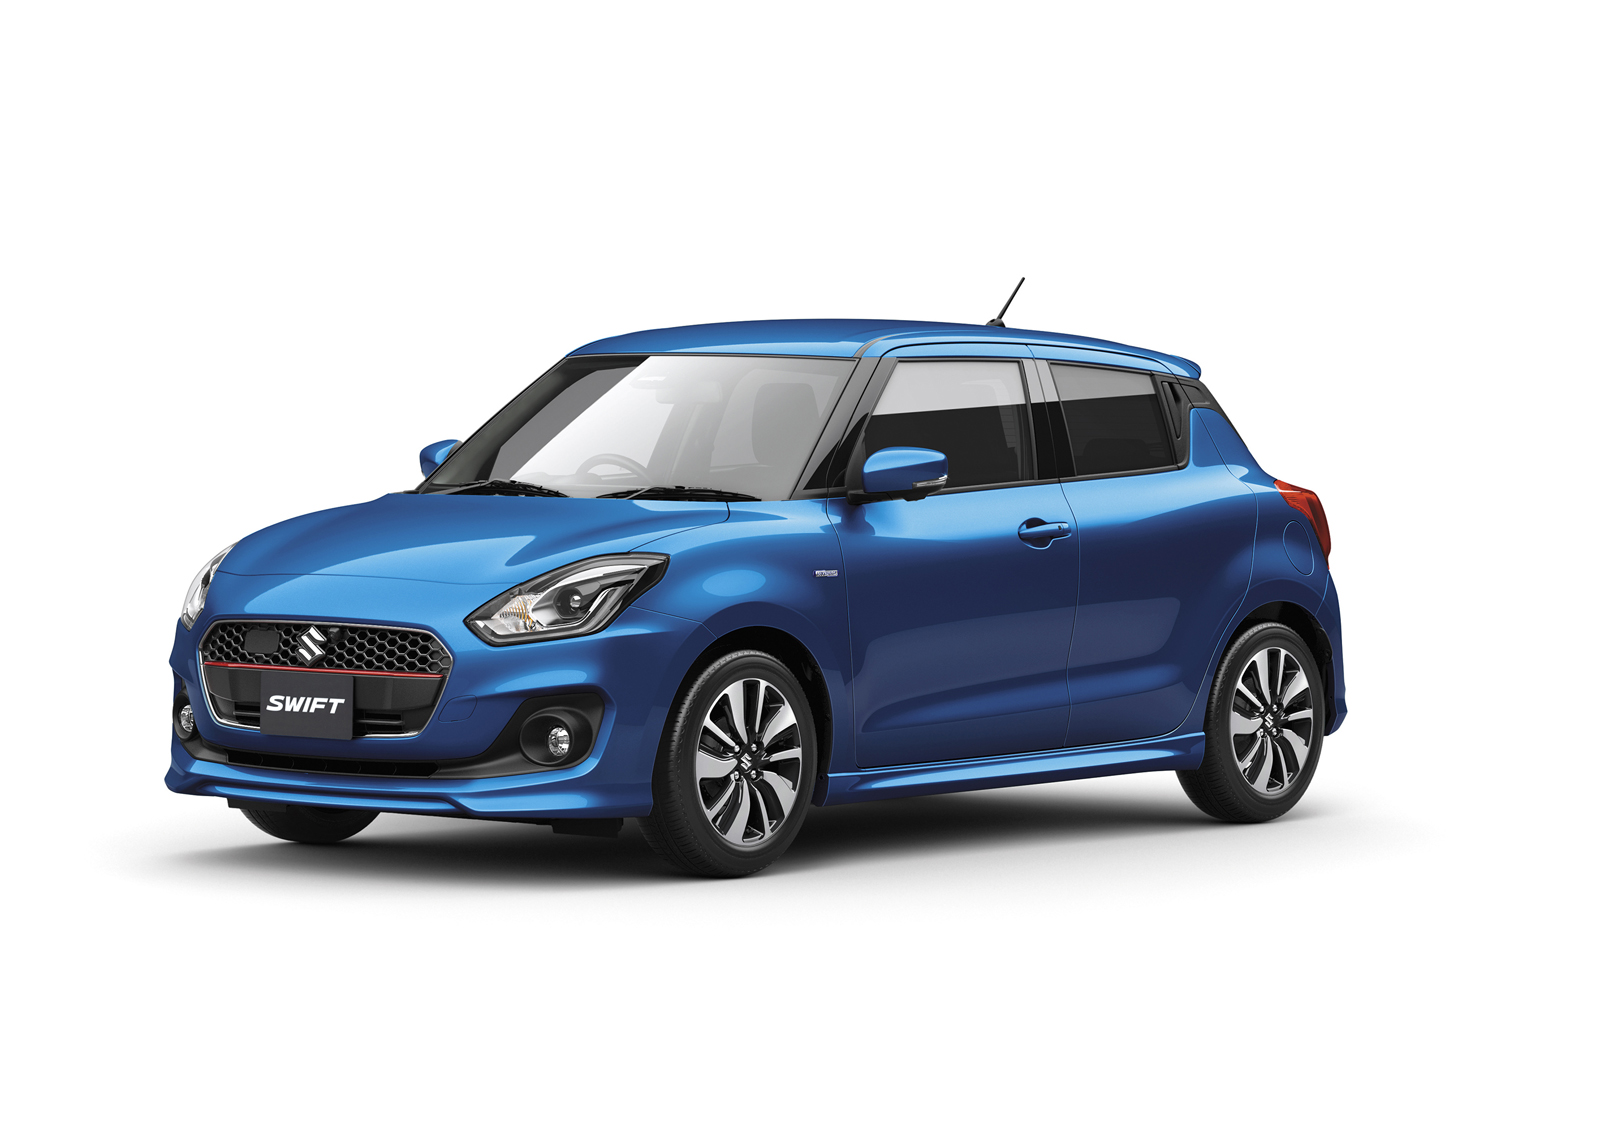 Suzuki Swift 2017 (16)